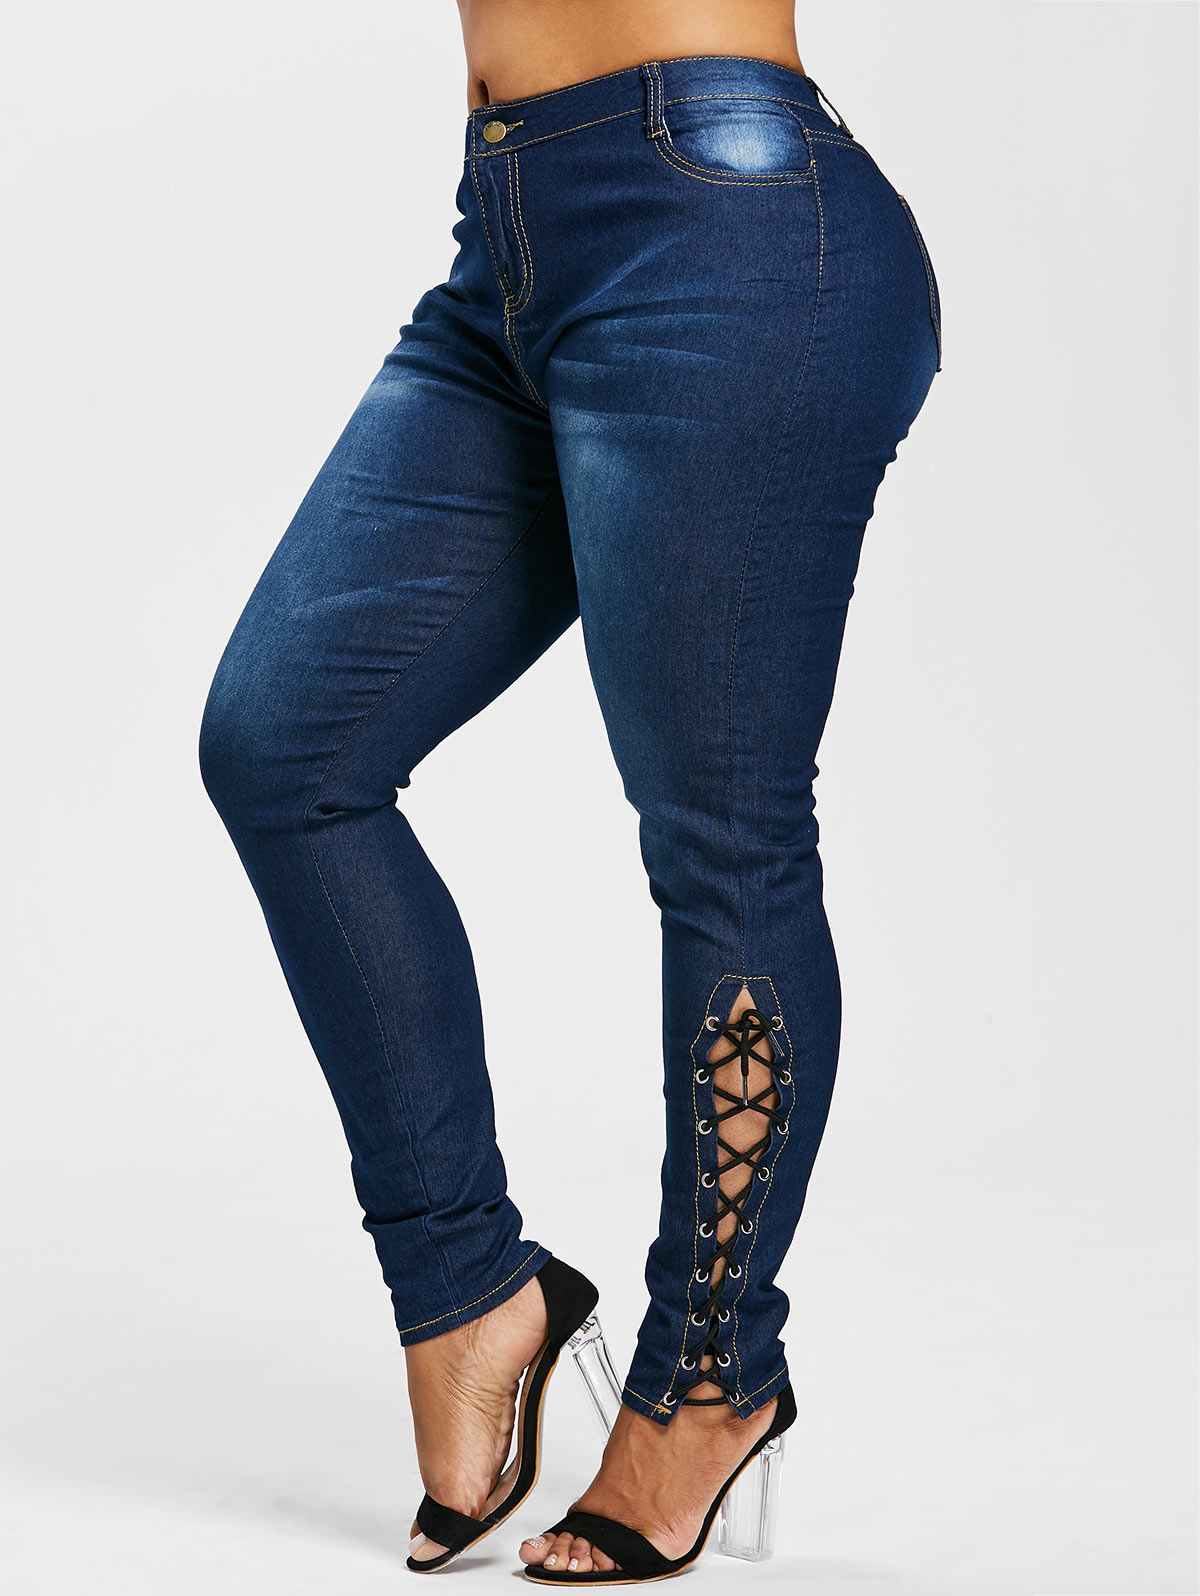 Wipalo Plus Size Zipper Fly Side Lace Up Jeans Skinny High Waist Pockets Female Washed Denim Women Pant Trousers Big Size 5XL-in Jeans from Women's Clothing & Accessories on Aliexpress.com | Alibaba Group